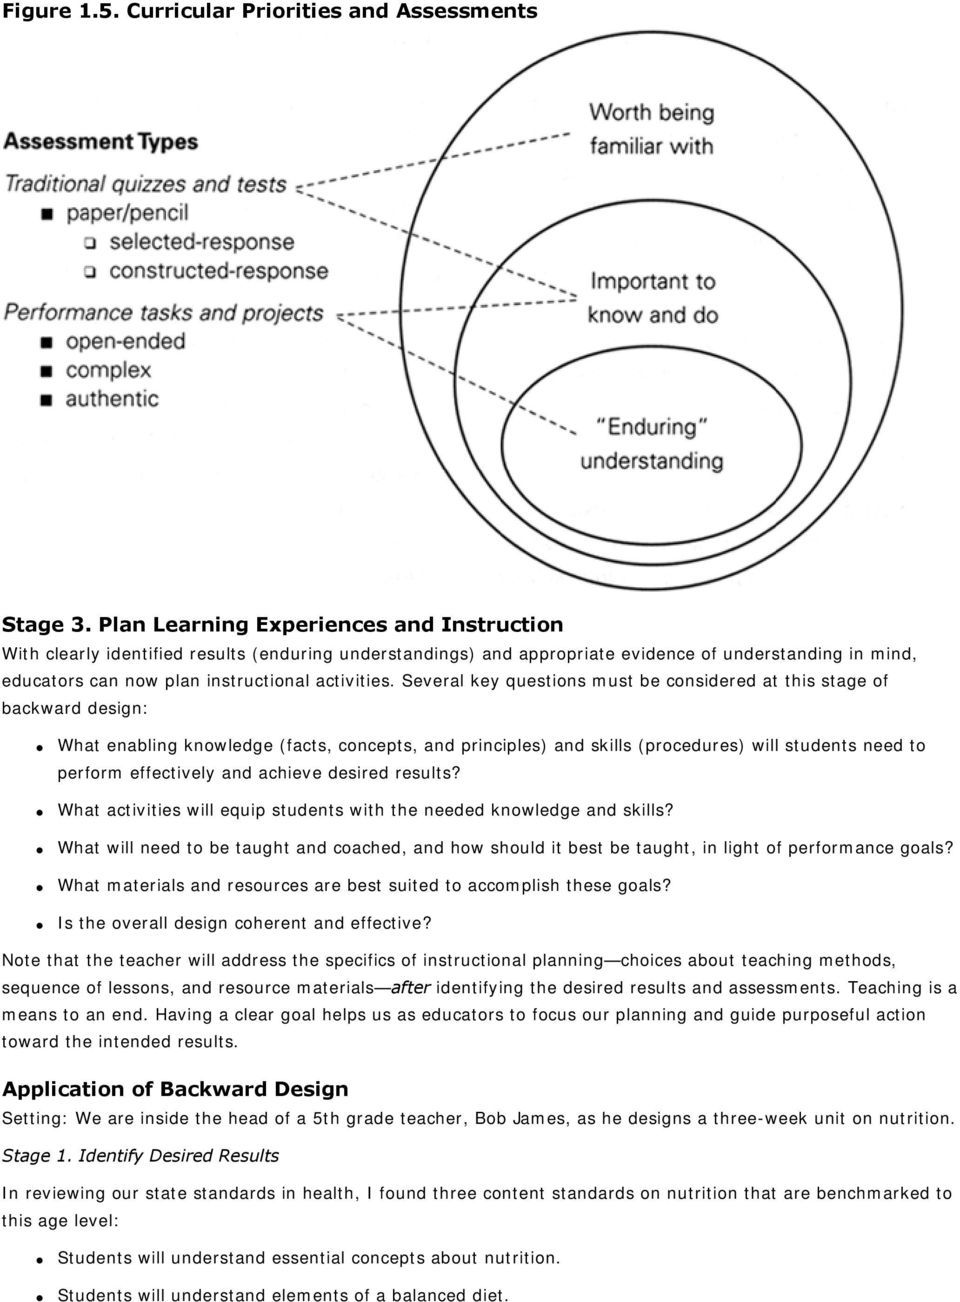 Several key questions must be considered at this stage of backward design: What enabling knowledge (facts, concepts, and principles) and skills (procedures) will students need to perform effectively